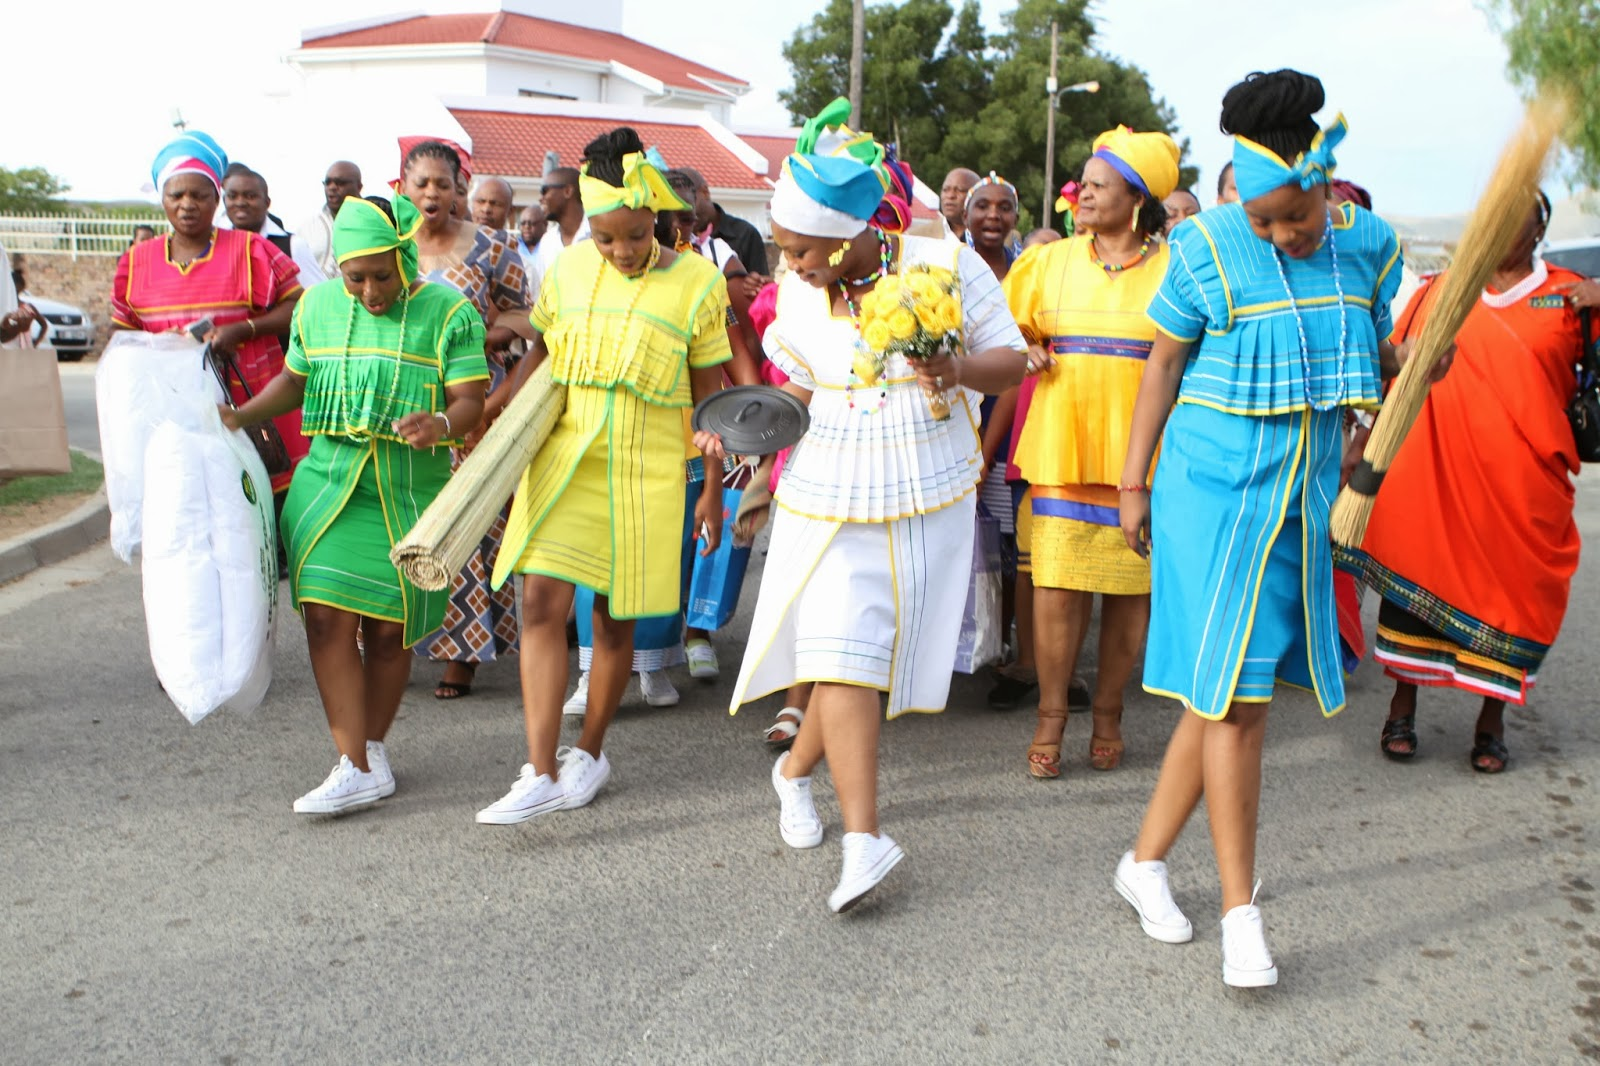 Pedi Meets Xhosa: Pedi Bride Being Welcomed Into A Xhosa